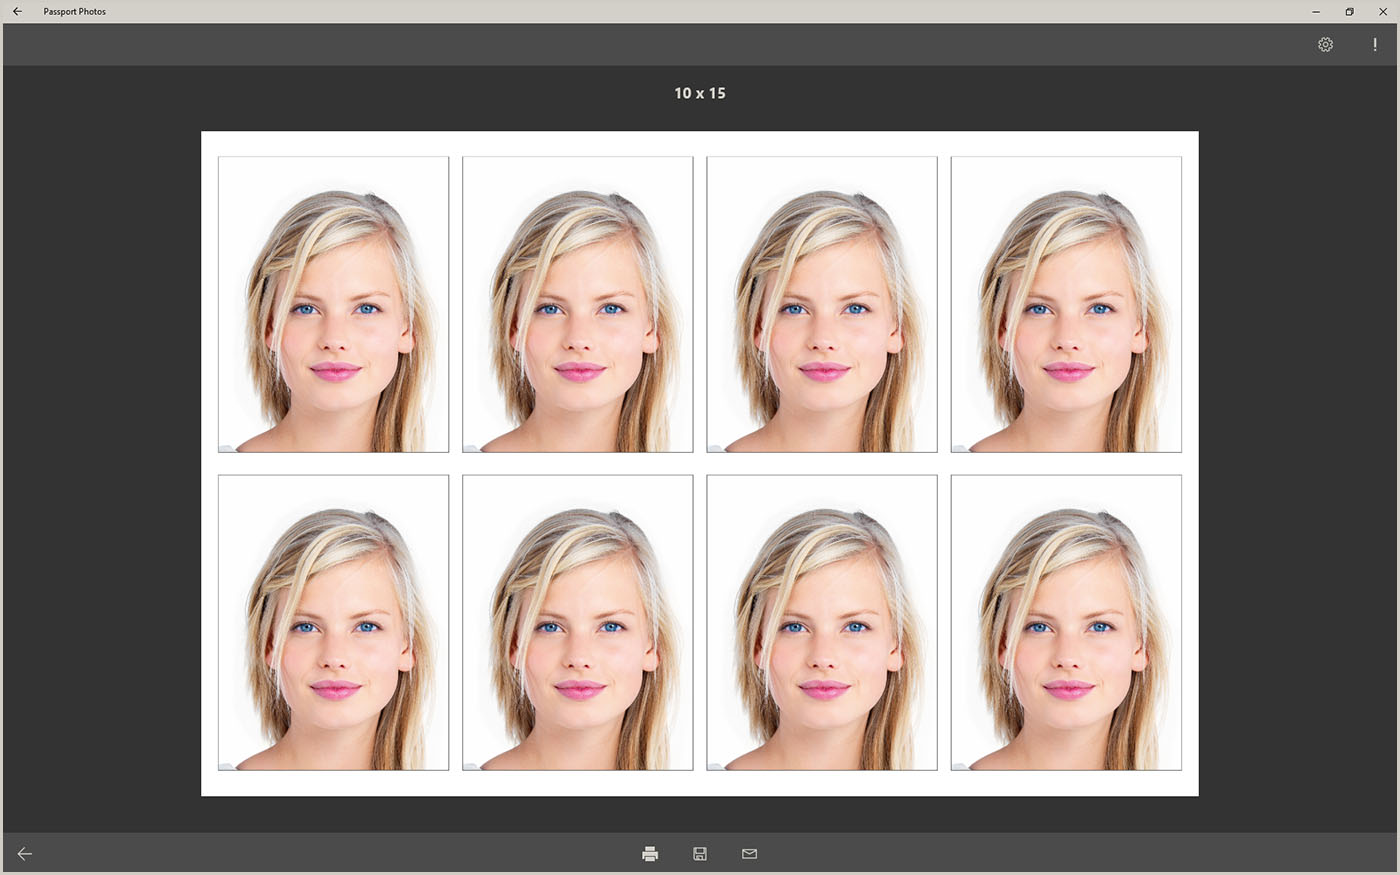 Eight passport photos on photo paper